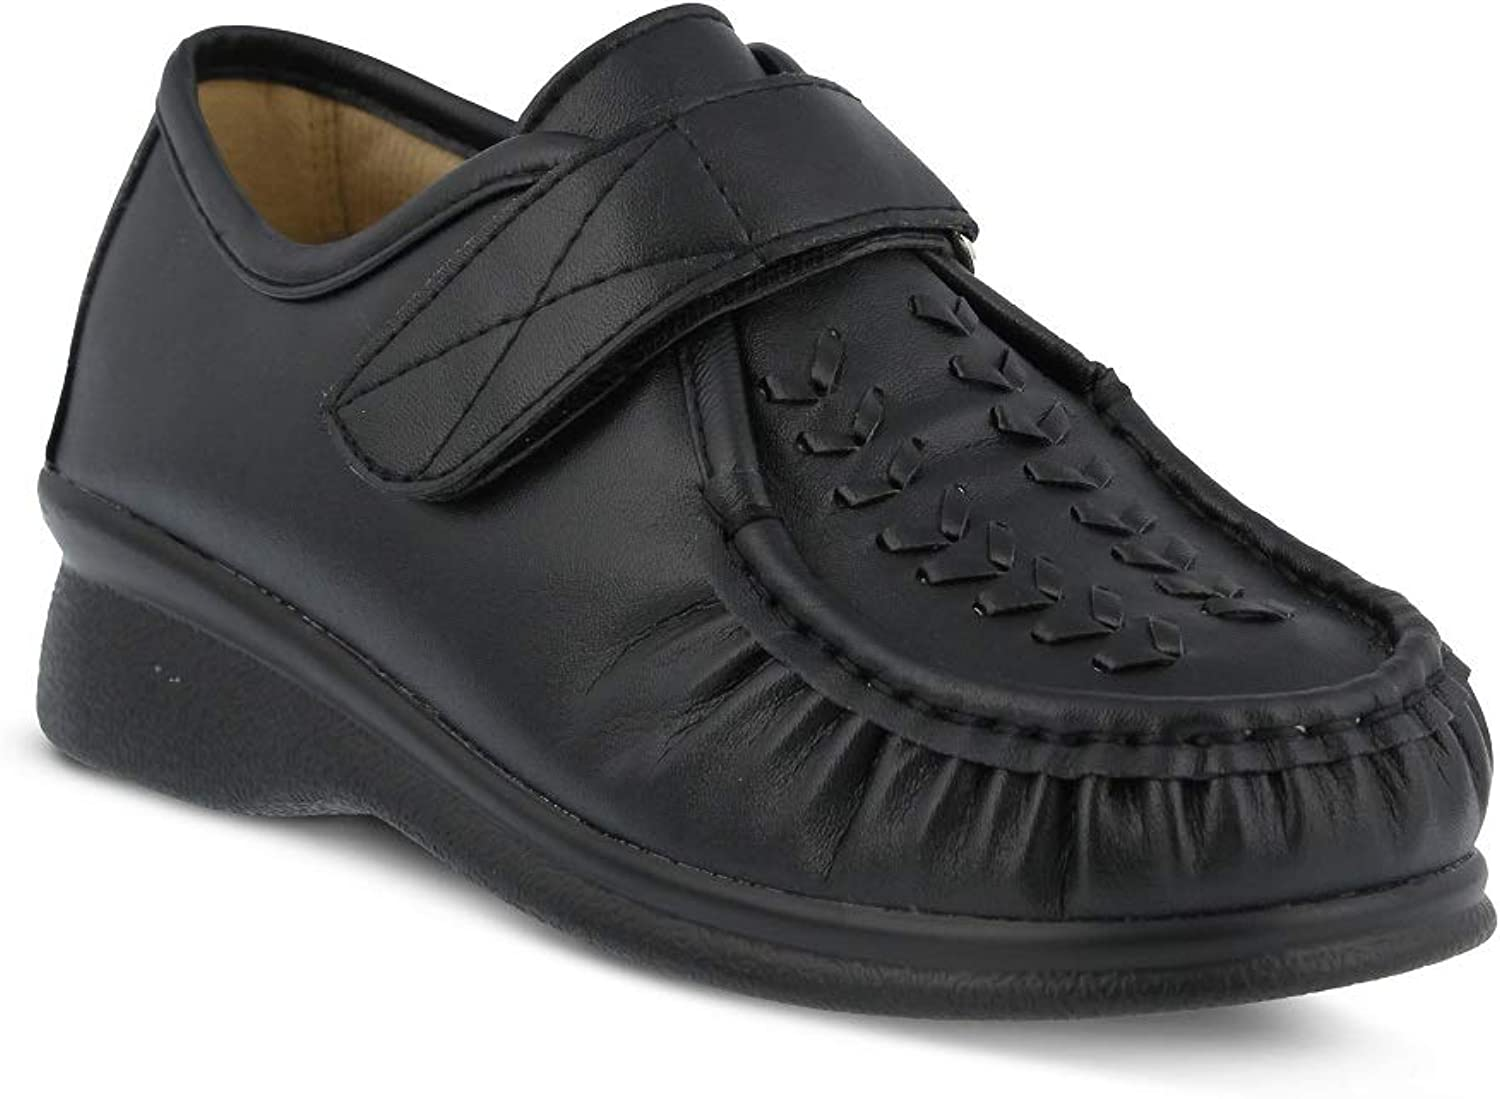 Spring Step Women's Elieen shoes   color Black   Leather shoes